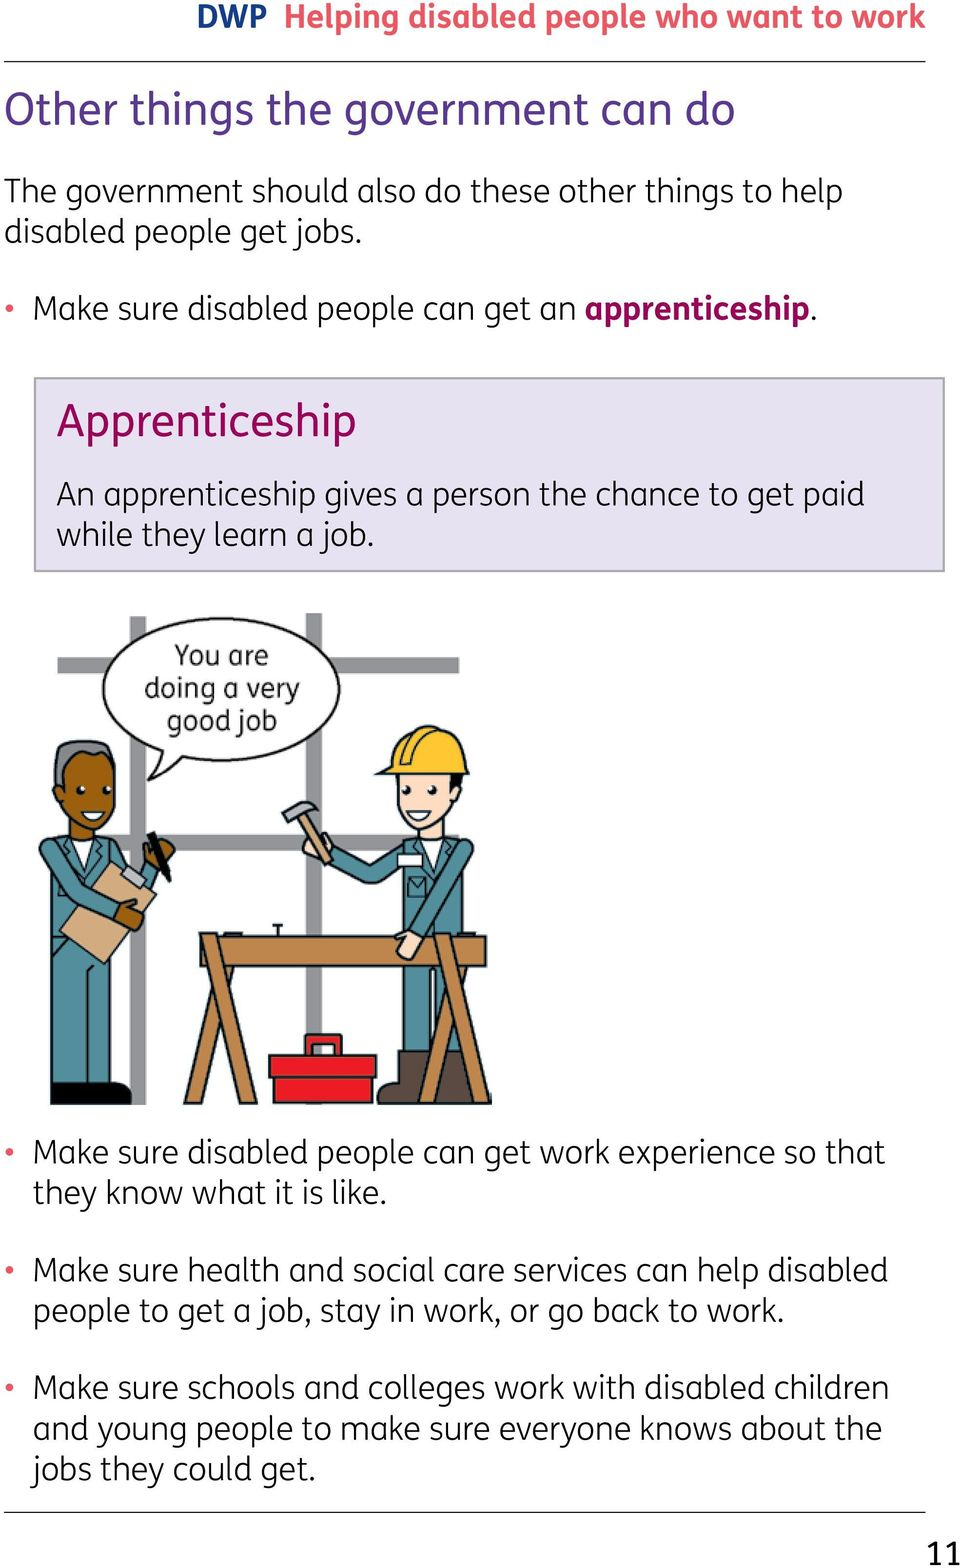 Make sure disabled people can get work experience so that they know what it is like.